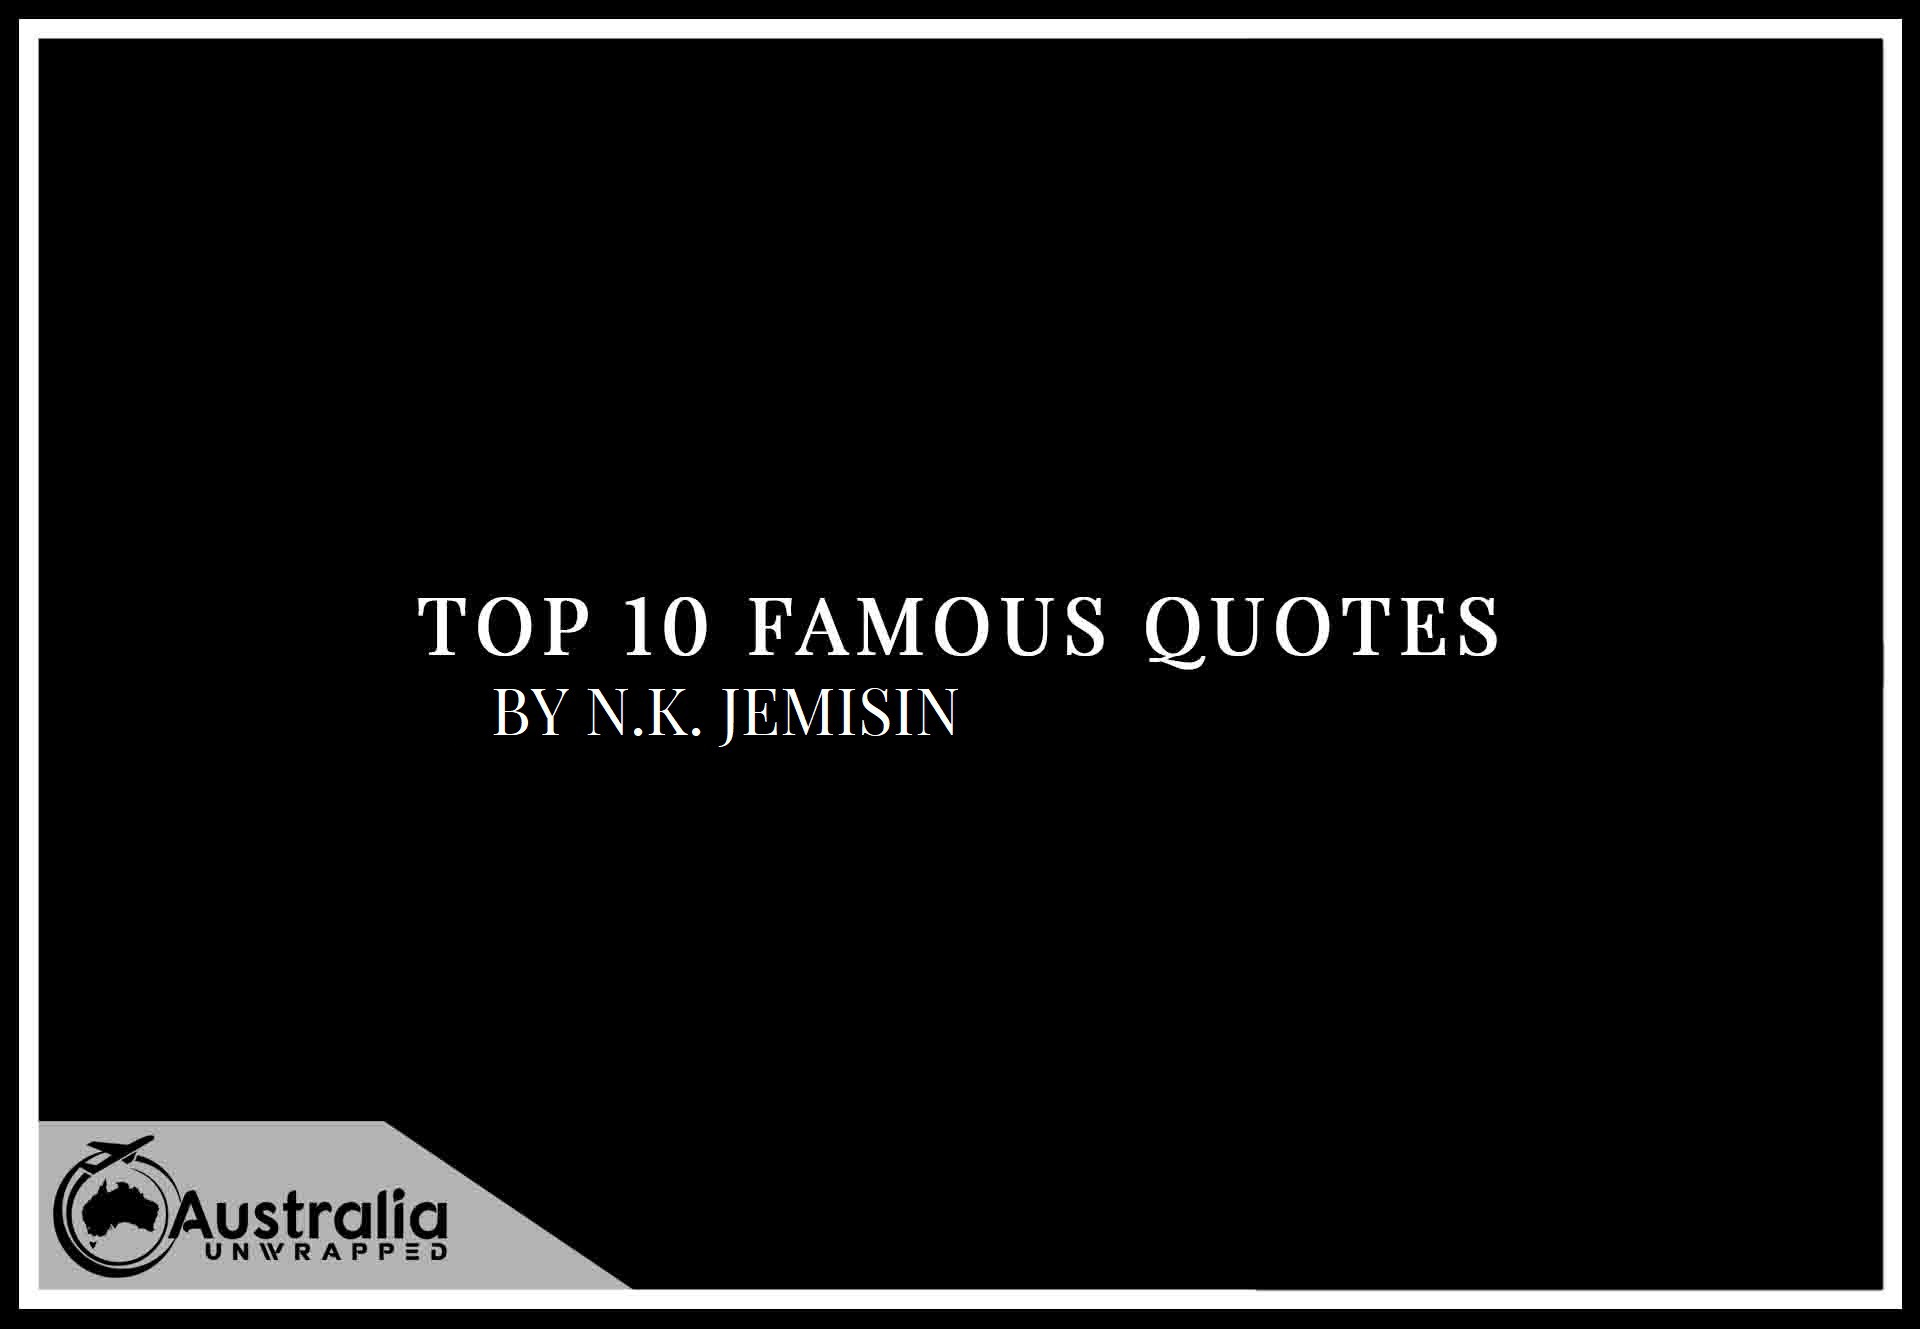 Top 10 Famous Quotes by Author N.K. Jemisin